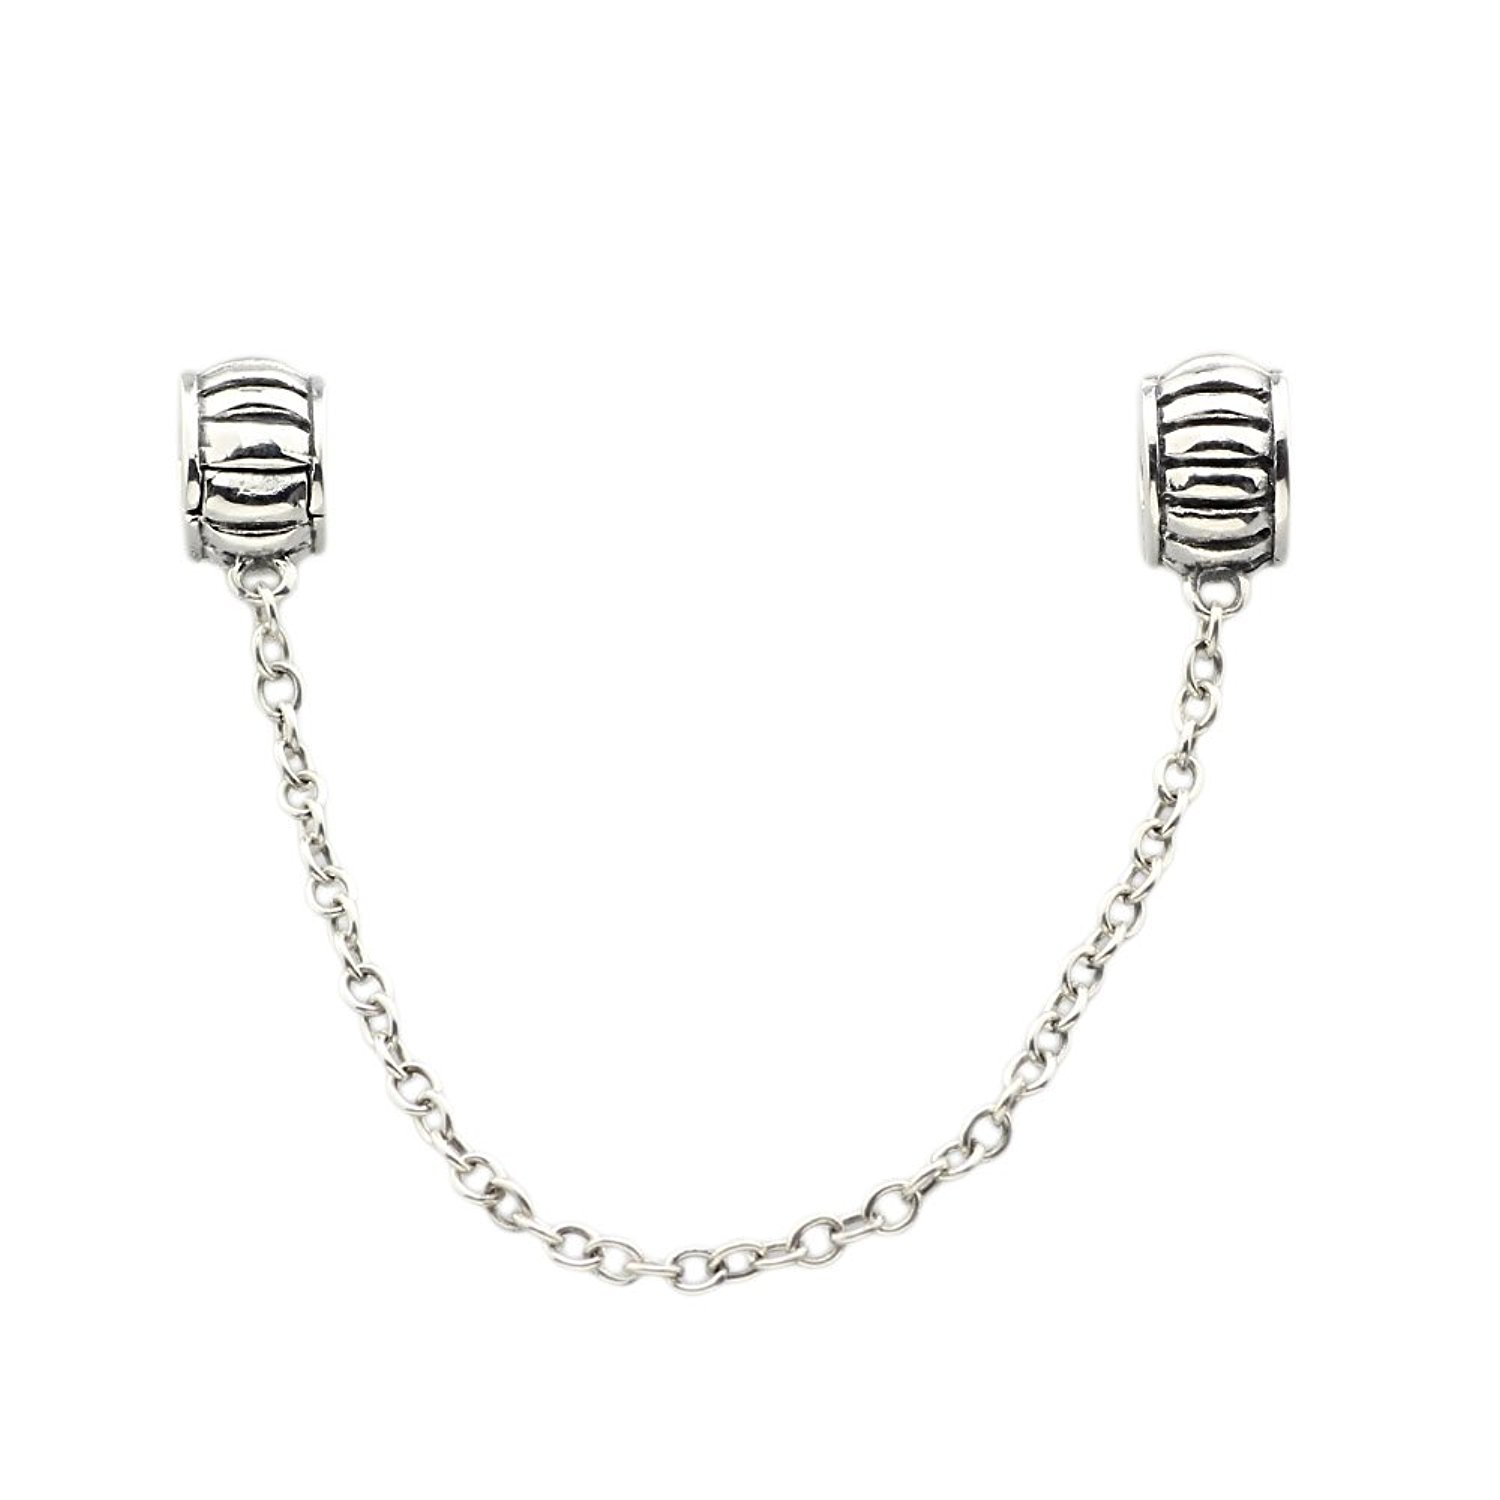 Clip Stopper/spacer .925 Sterling Silver Bead Charm Safety Chain